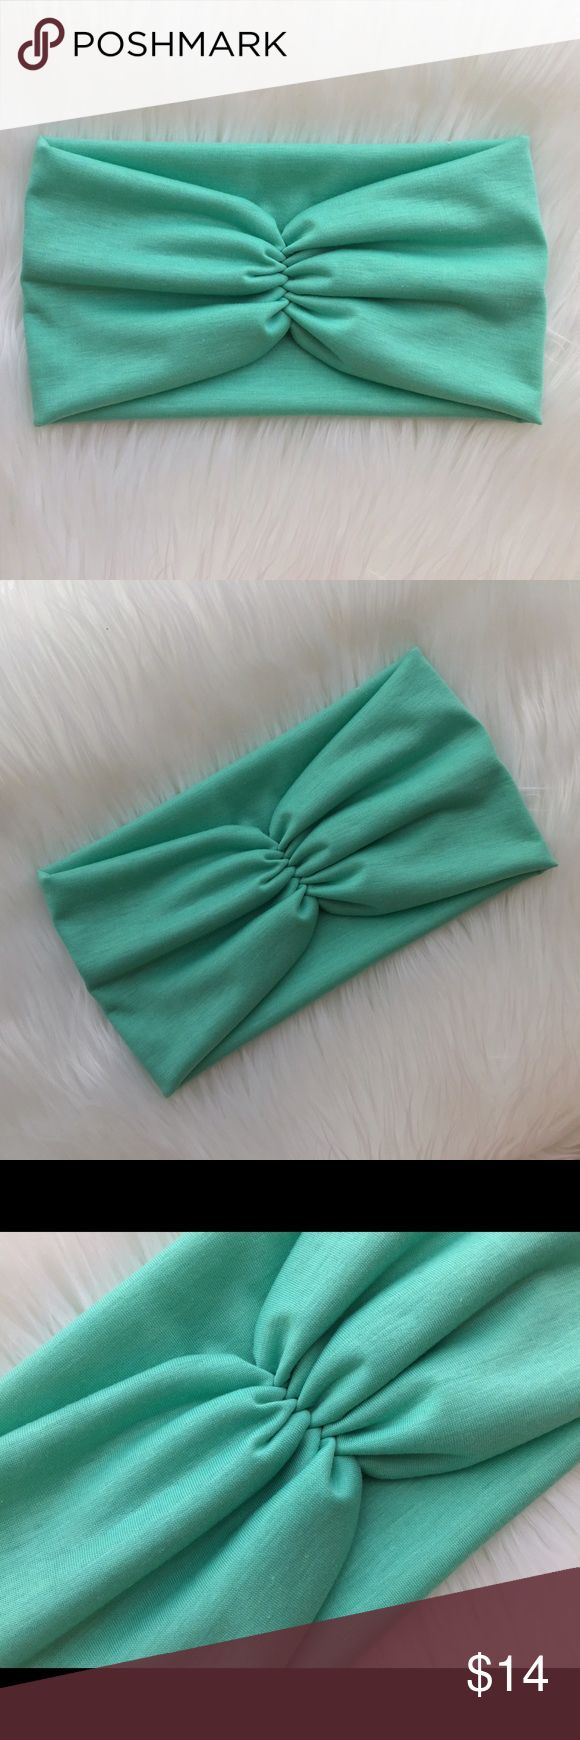 """Scrunch Headband in Mint Scrunch turban headband, Seam to front or back, scrunch in the front and wide in the back. It is wide and comfy, can be worn wide or scrunch it for a thin look                   Material: crafted from a soft and stretchy knit fabric. Band Measures about 5 3/4"""" in the back. Care: Handwash cold, lay flat to dry.  *Color of actual product purchased may slightly vary in hue/ color from photograph due to camera lighting. mercedesbandz Accessories Hair Accessories"""